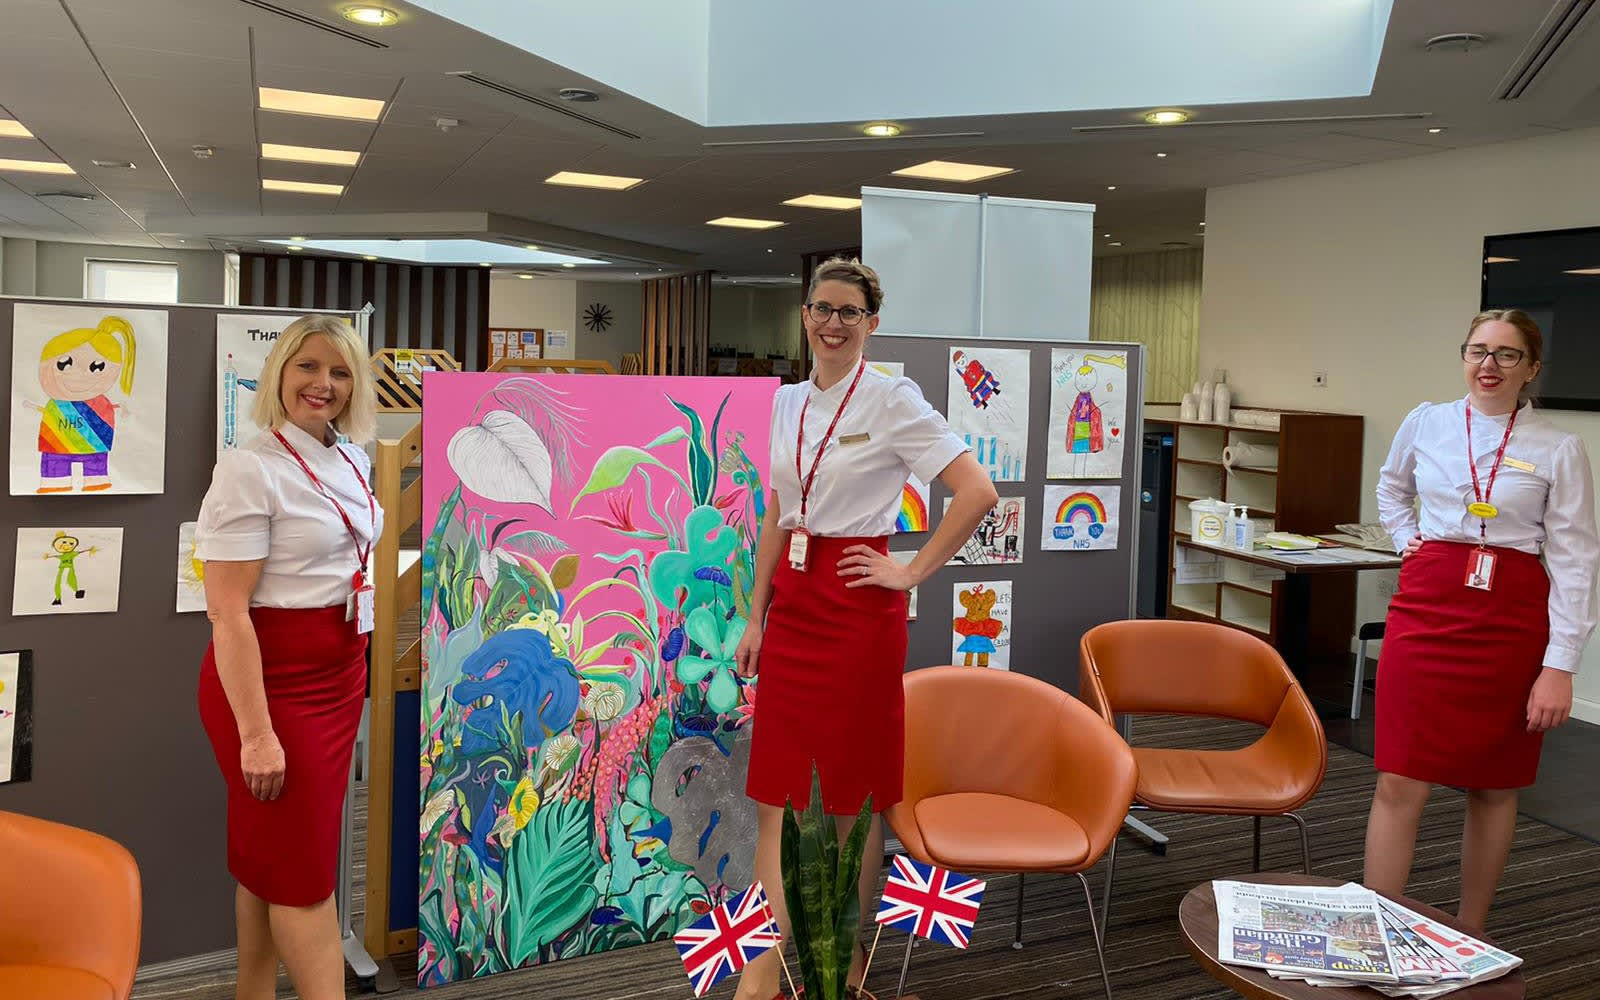 Three crew member pose with some artwork created for the NHS by children. Rainbows and hearts